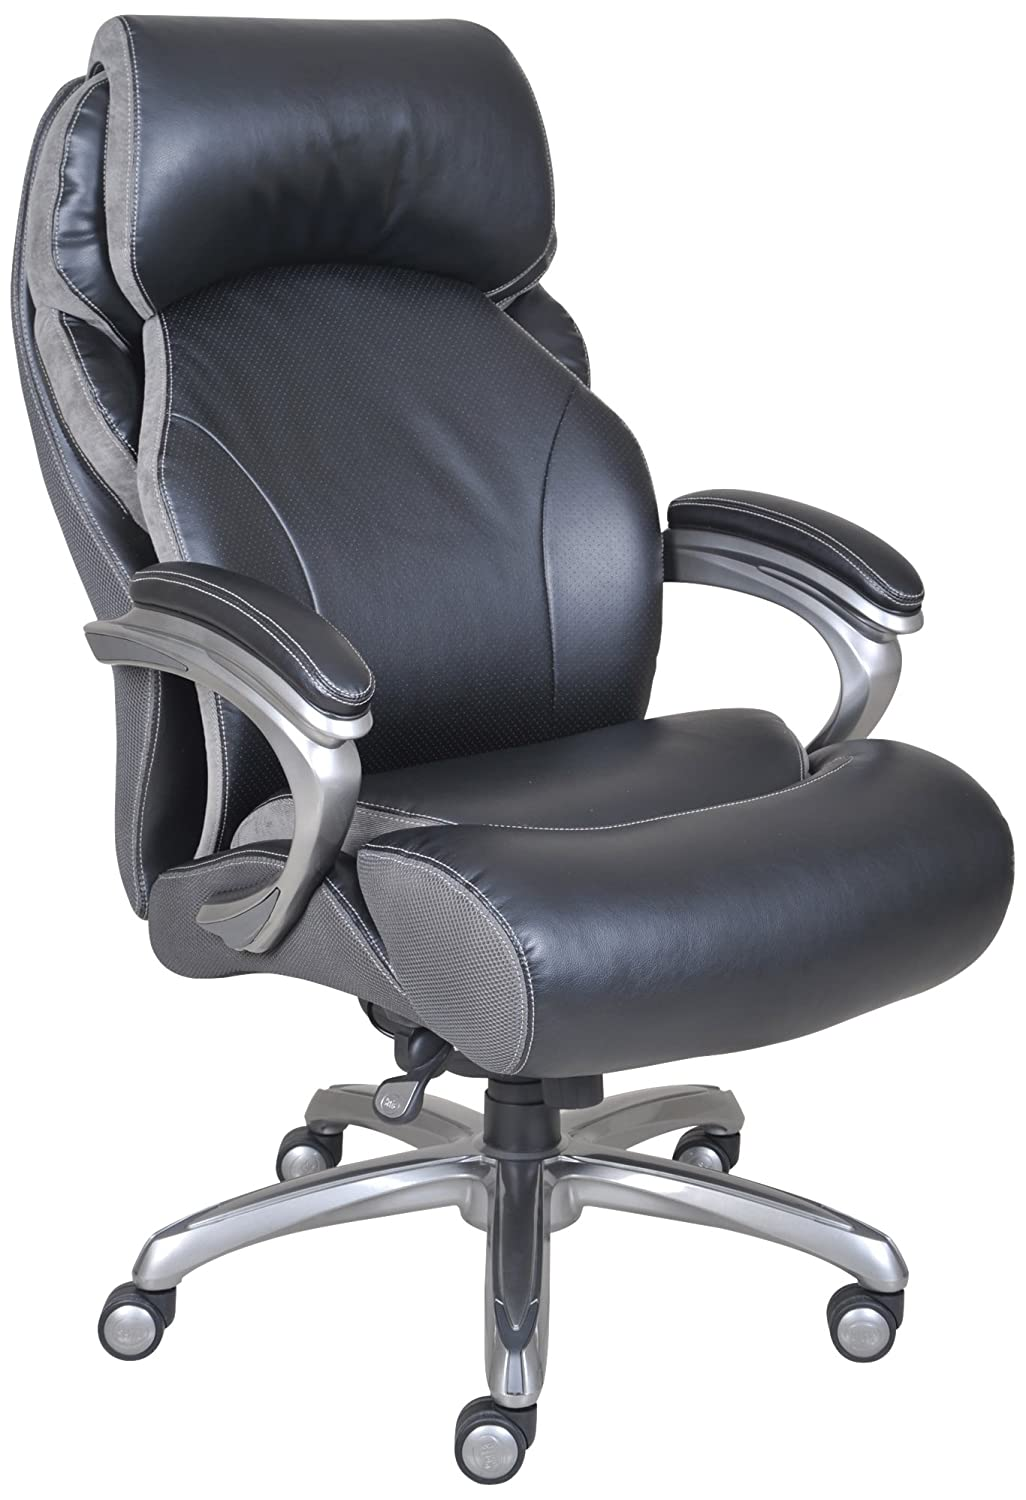 amazoncom serta big and tall smart layers tranquility executive office chair with air technology black kitchen dining big office chairs executive office chairs